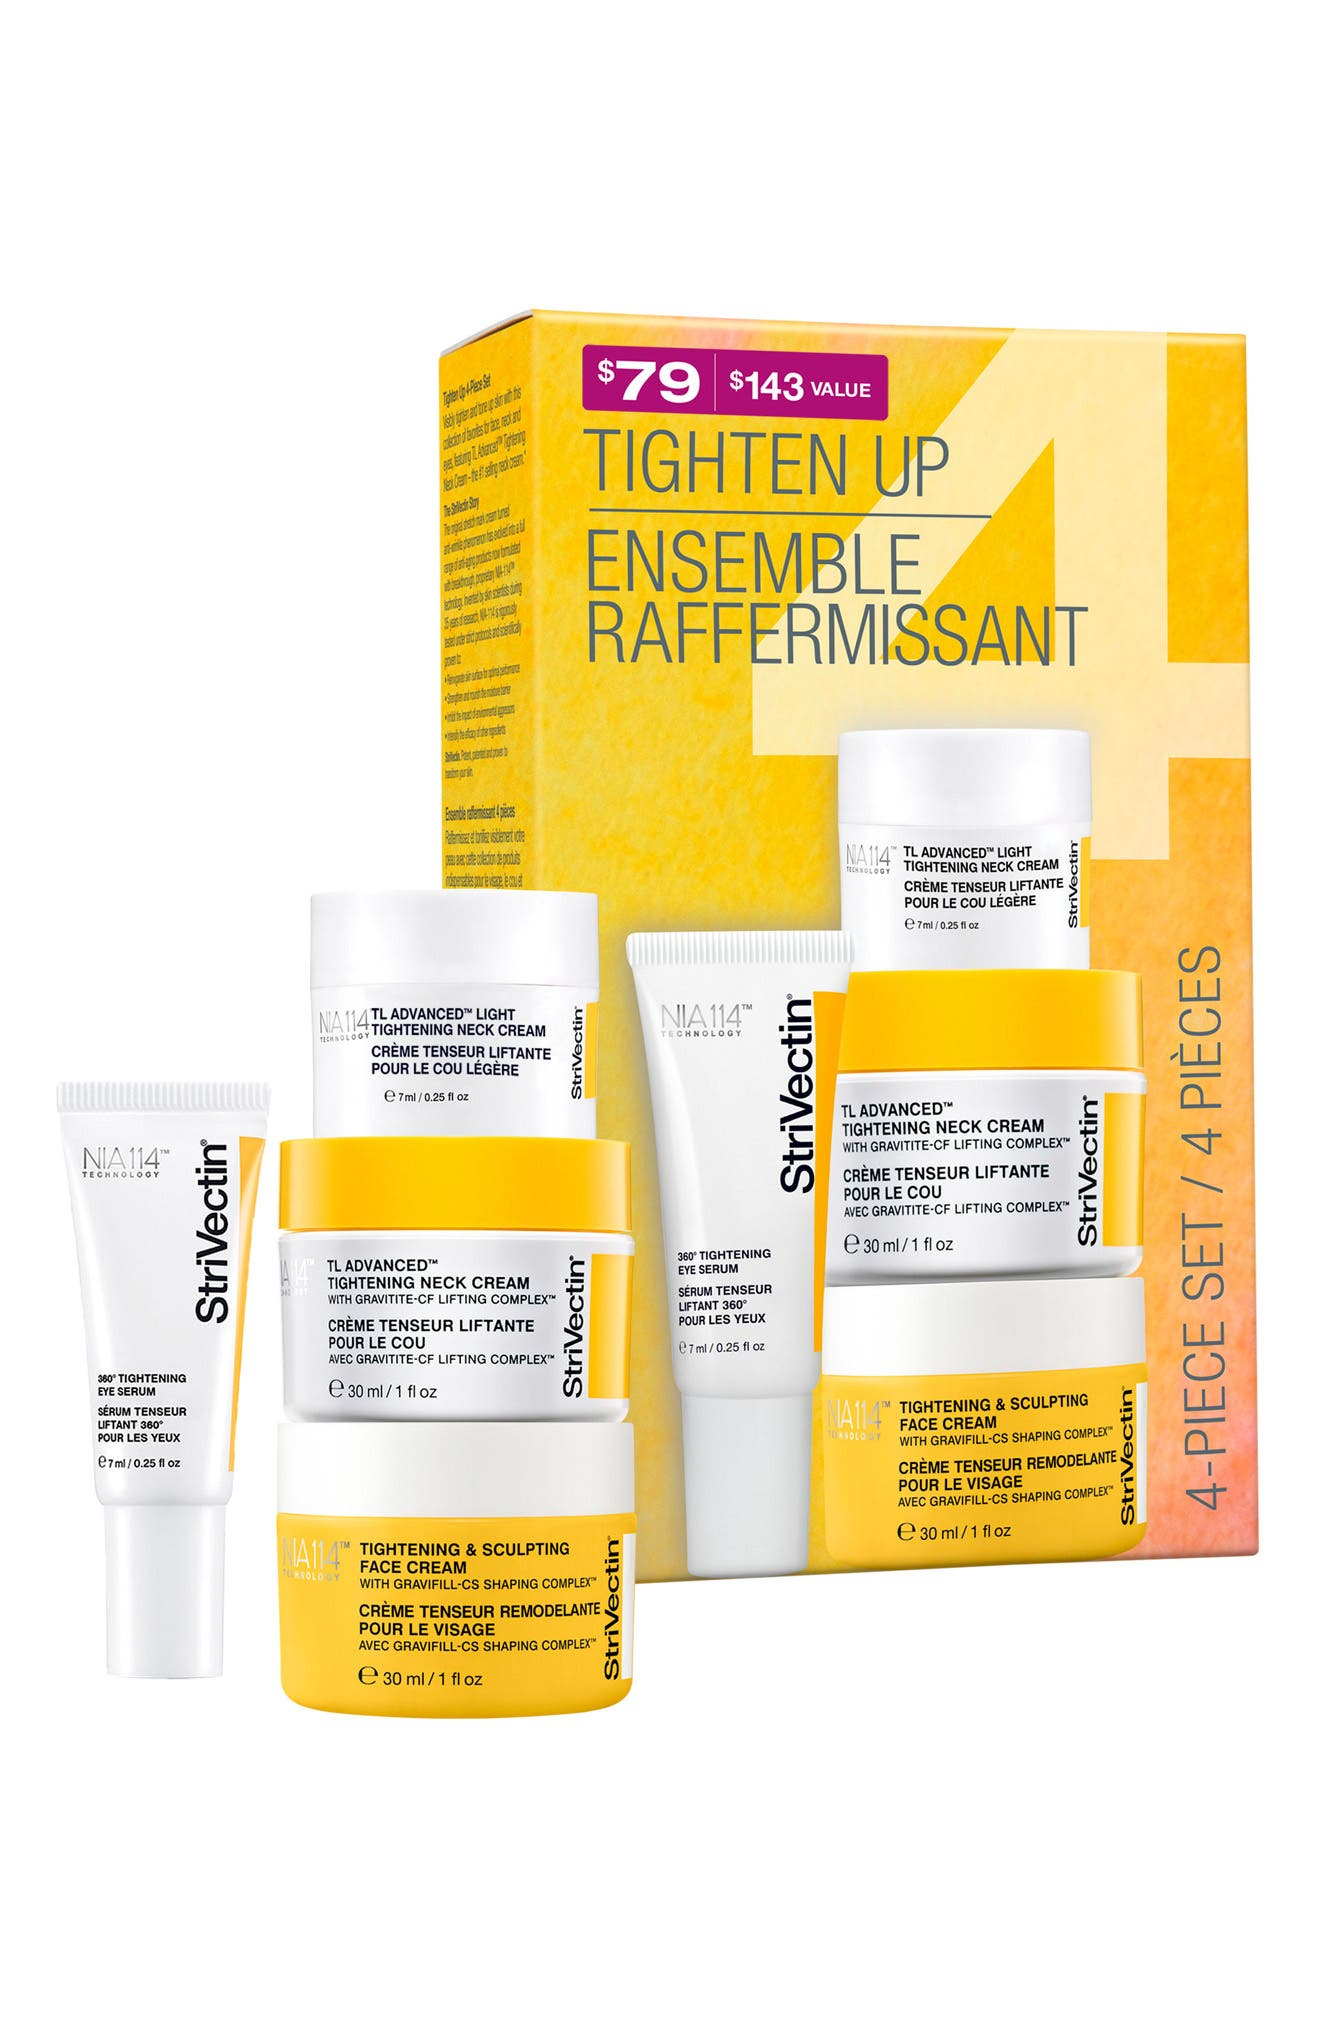 StriVectin®-TL™ Tighten Up Kit ($143 Value)